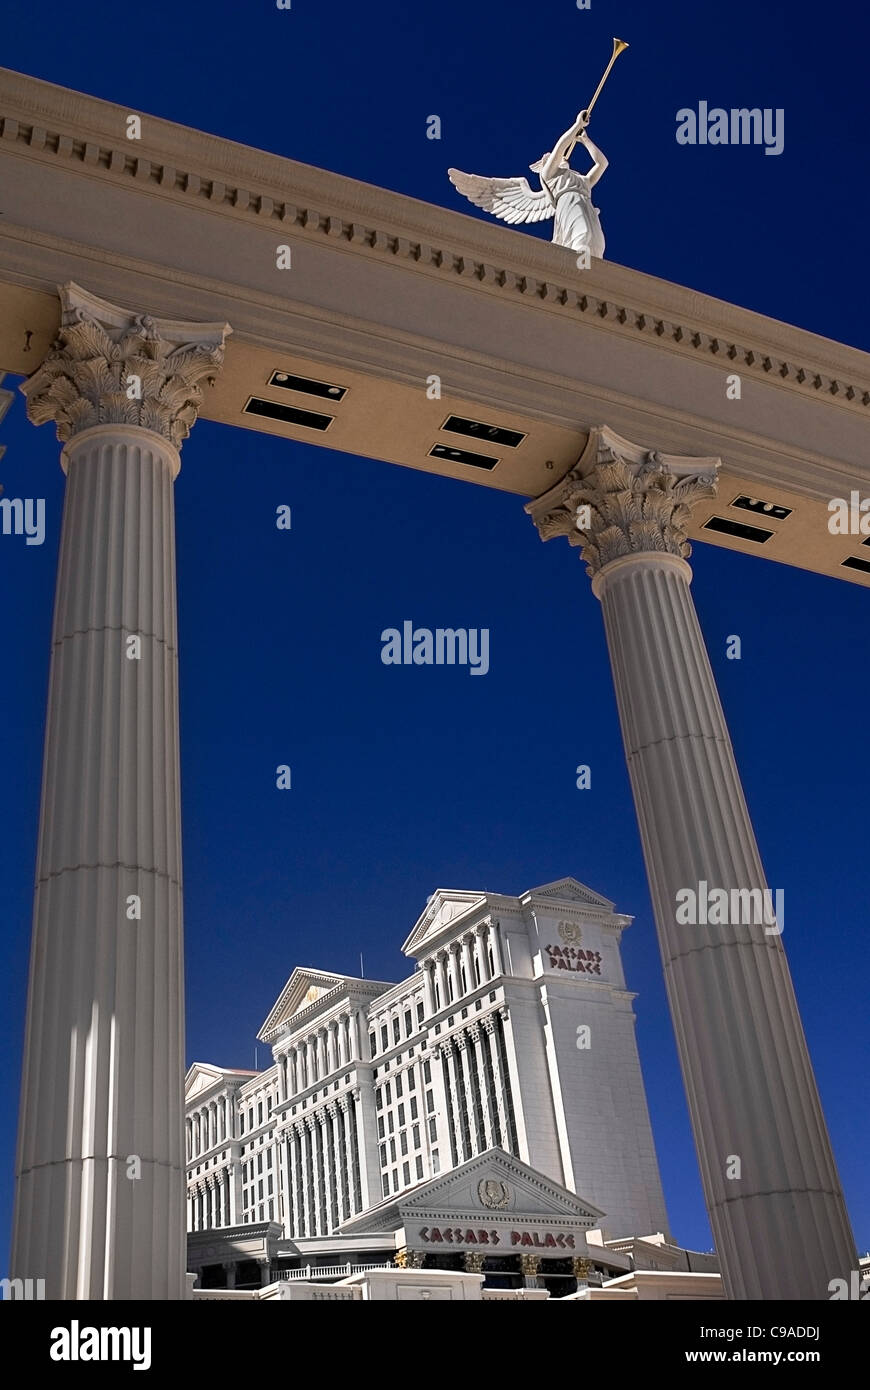 USA, Nevada, Las Vegas, The Strip, winged statue detail outside Caesars palace hotel and casino. - Stock Image